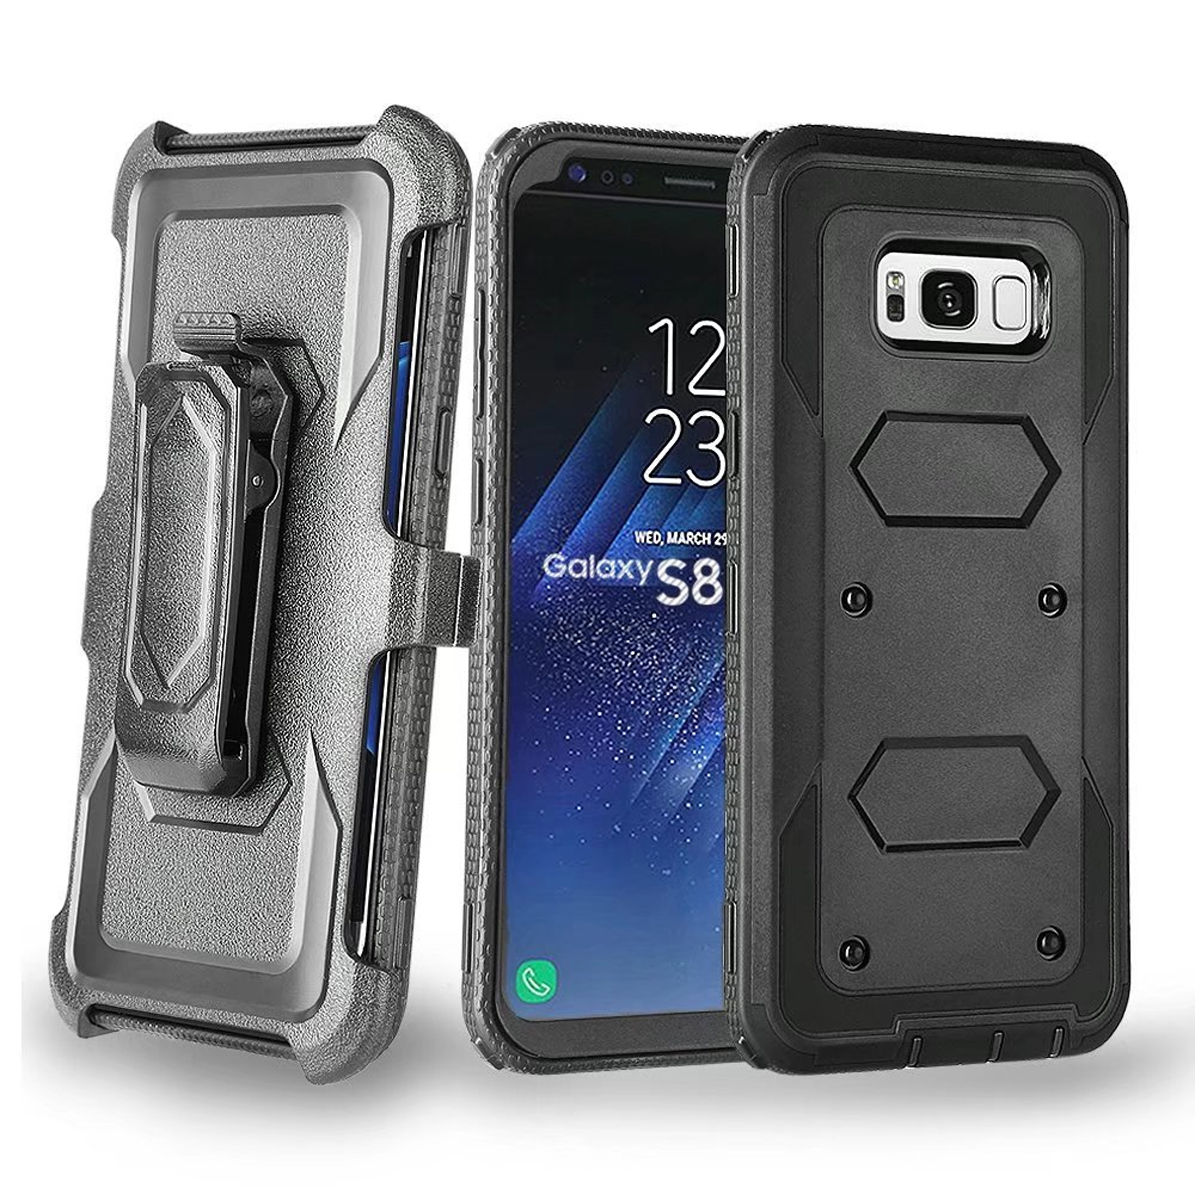 Galaxy S8 Plus Case, Mignova Hard Shell Holster Combo Matte Finish Protective Slim Case with KickStand and Locking Belt Swivel Clip for Samsung Galaxy S8 Plus 2017 release (Black)